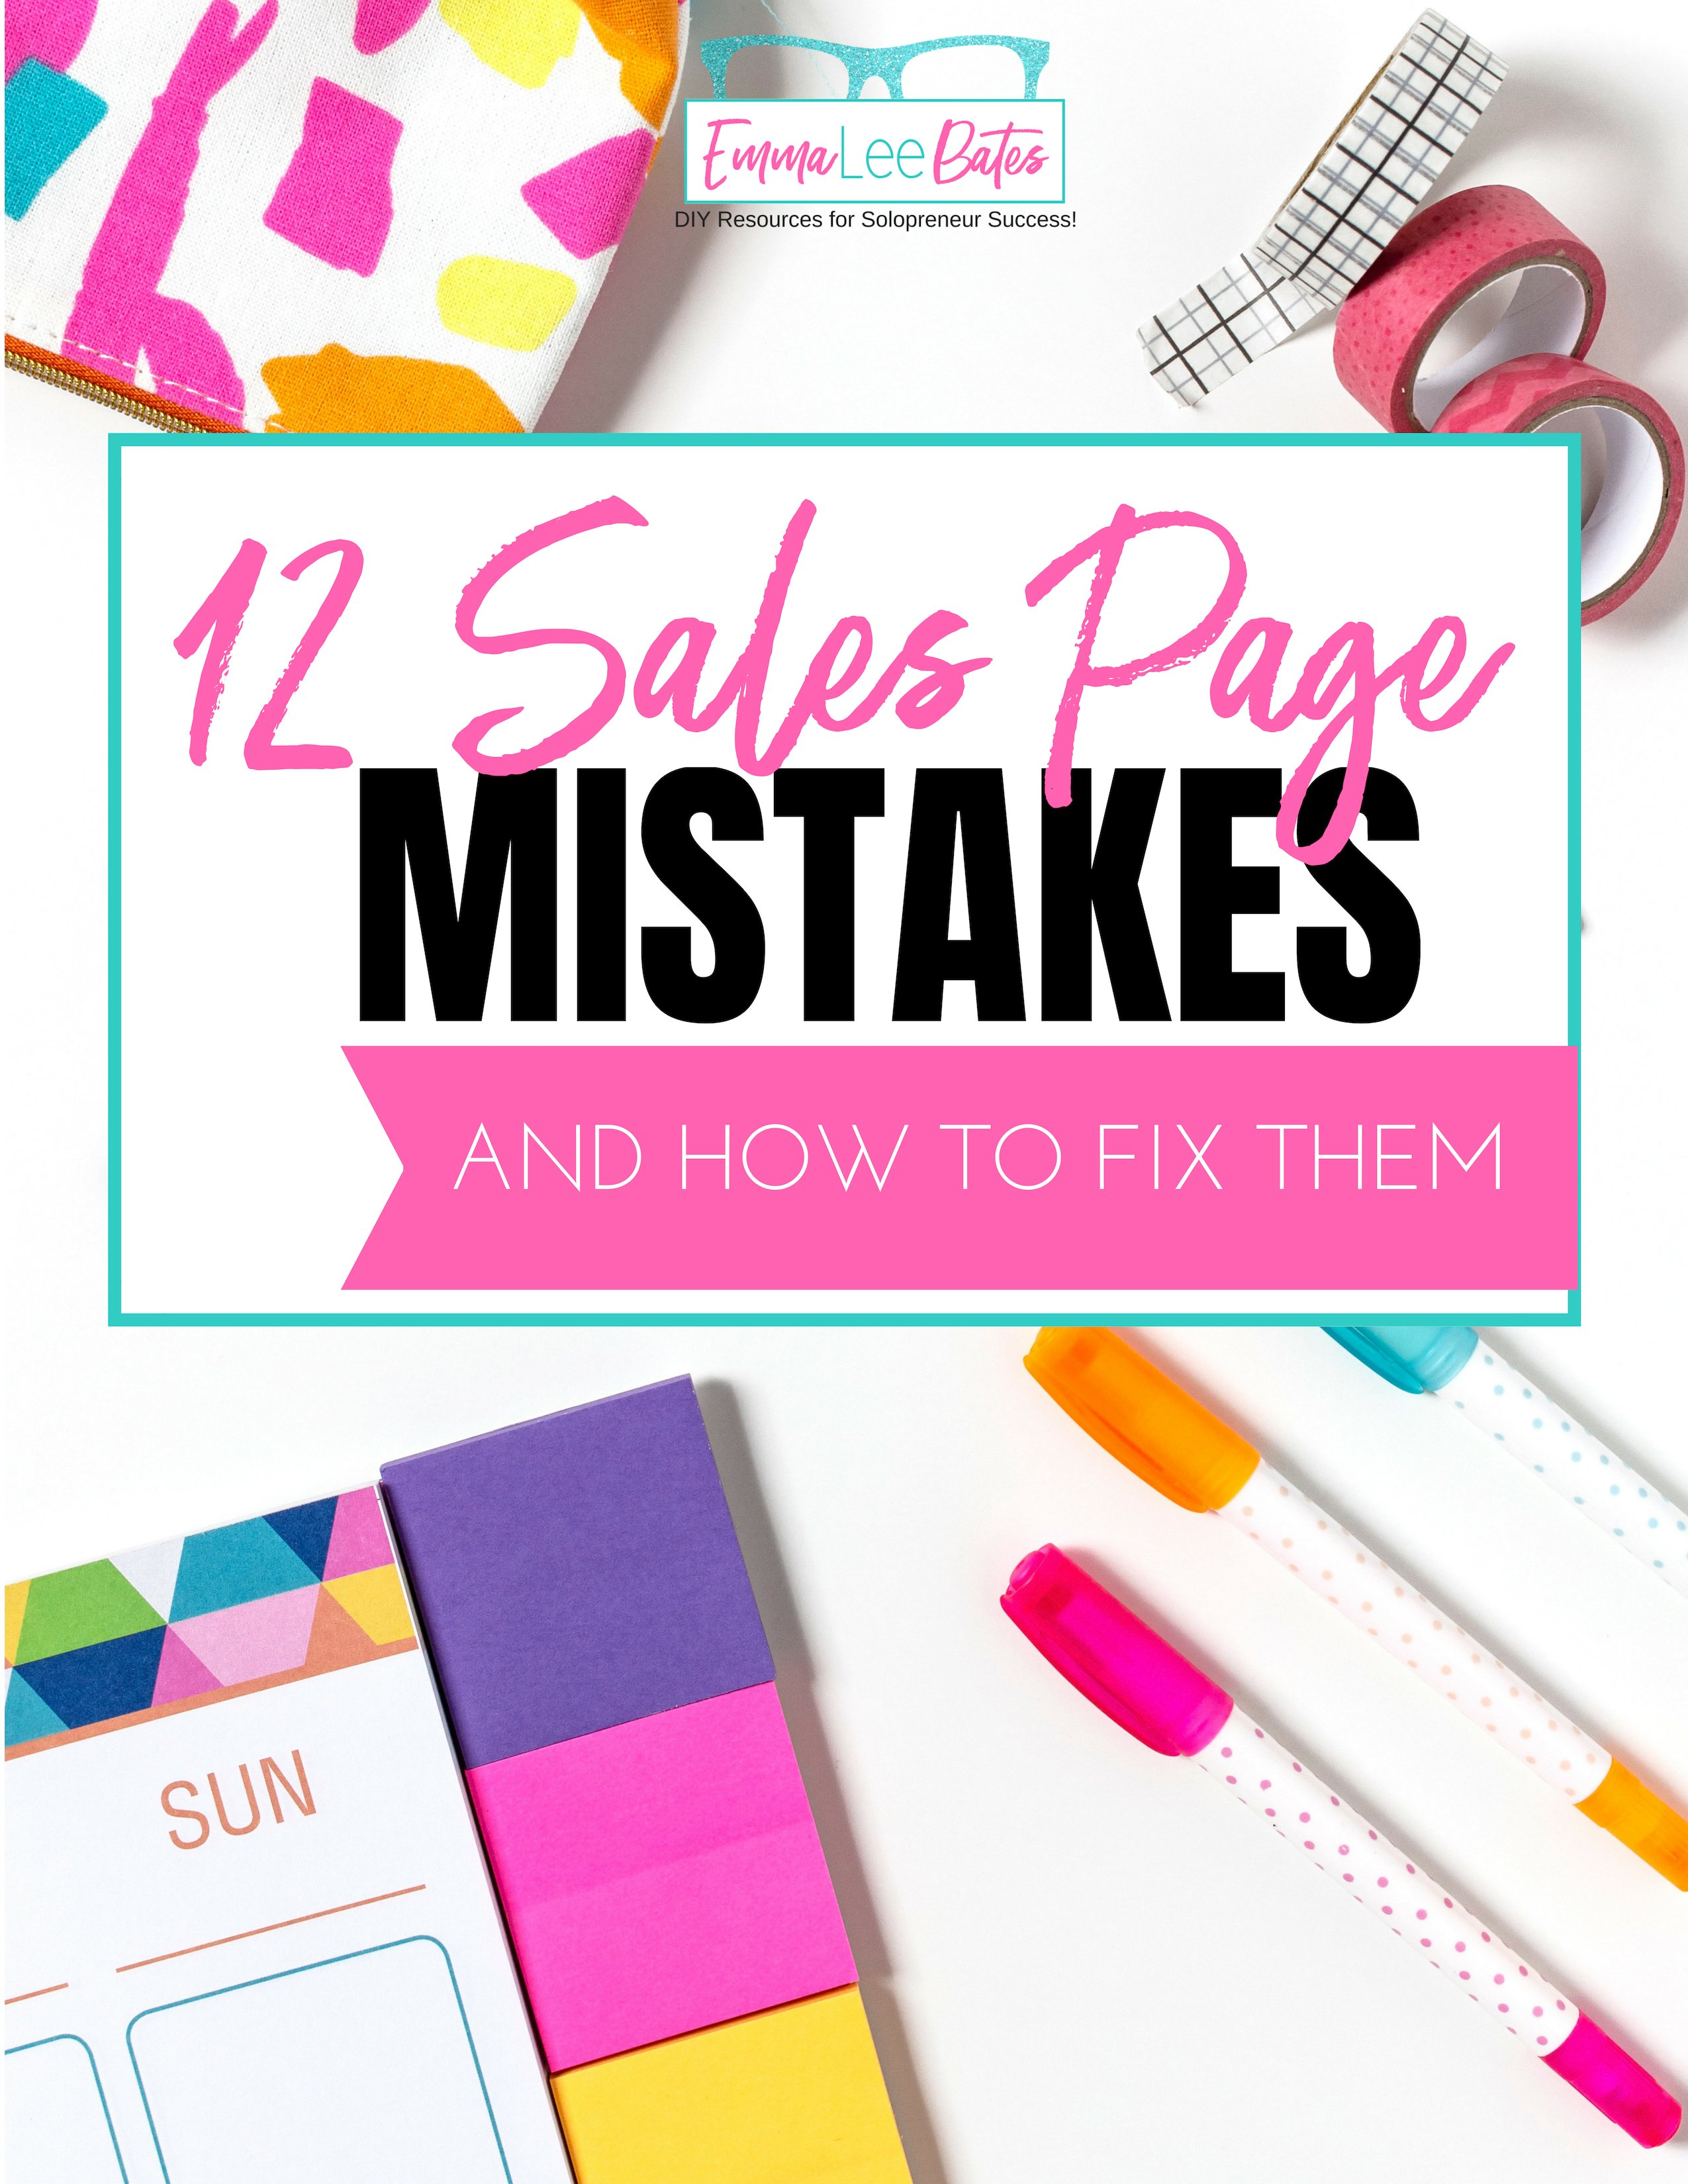 12 Sales Page Mistakes